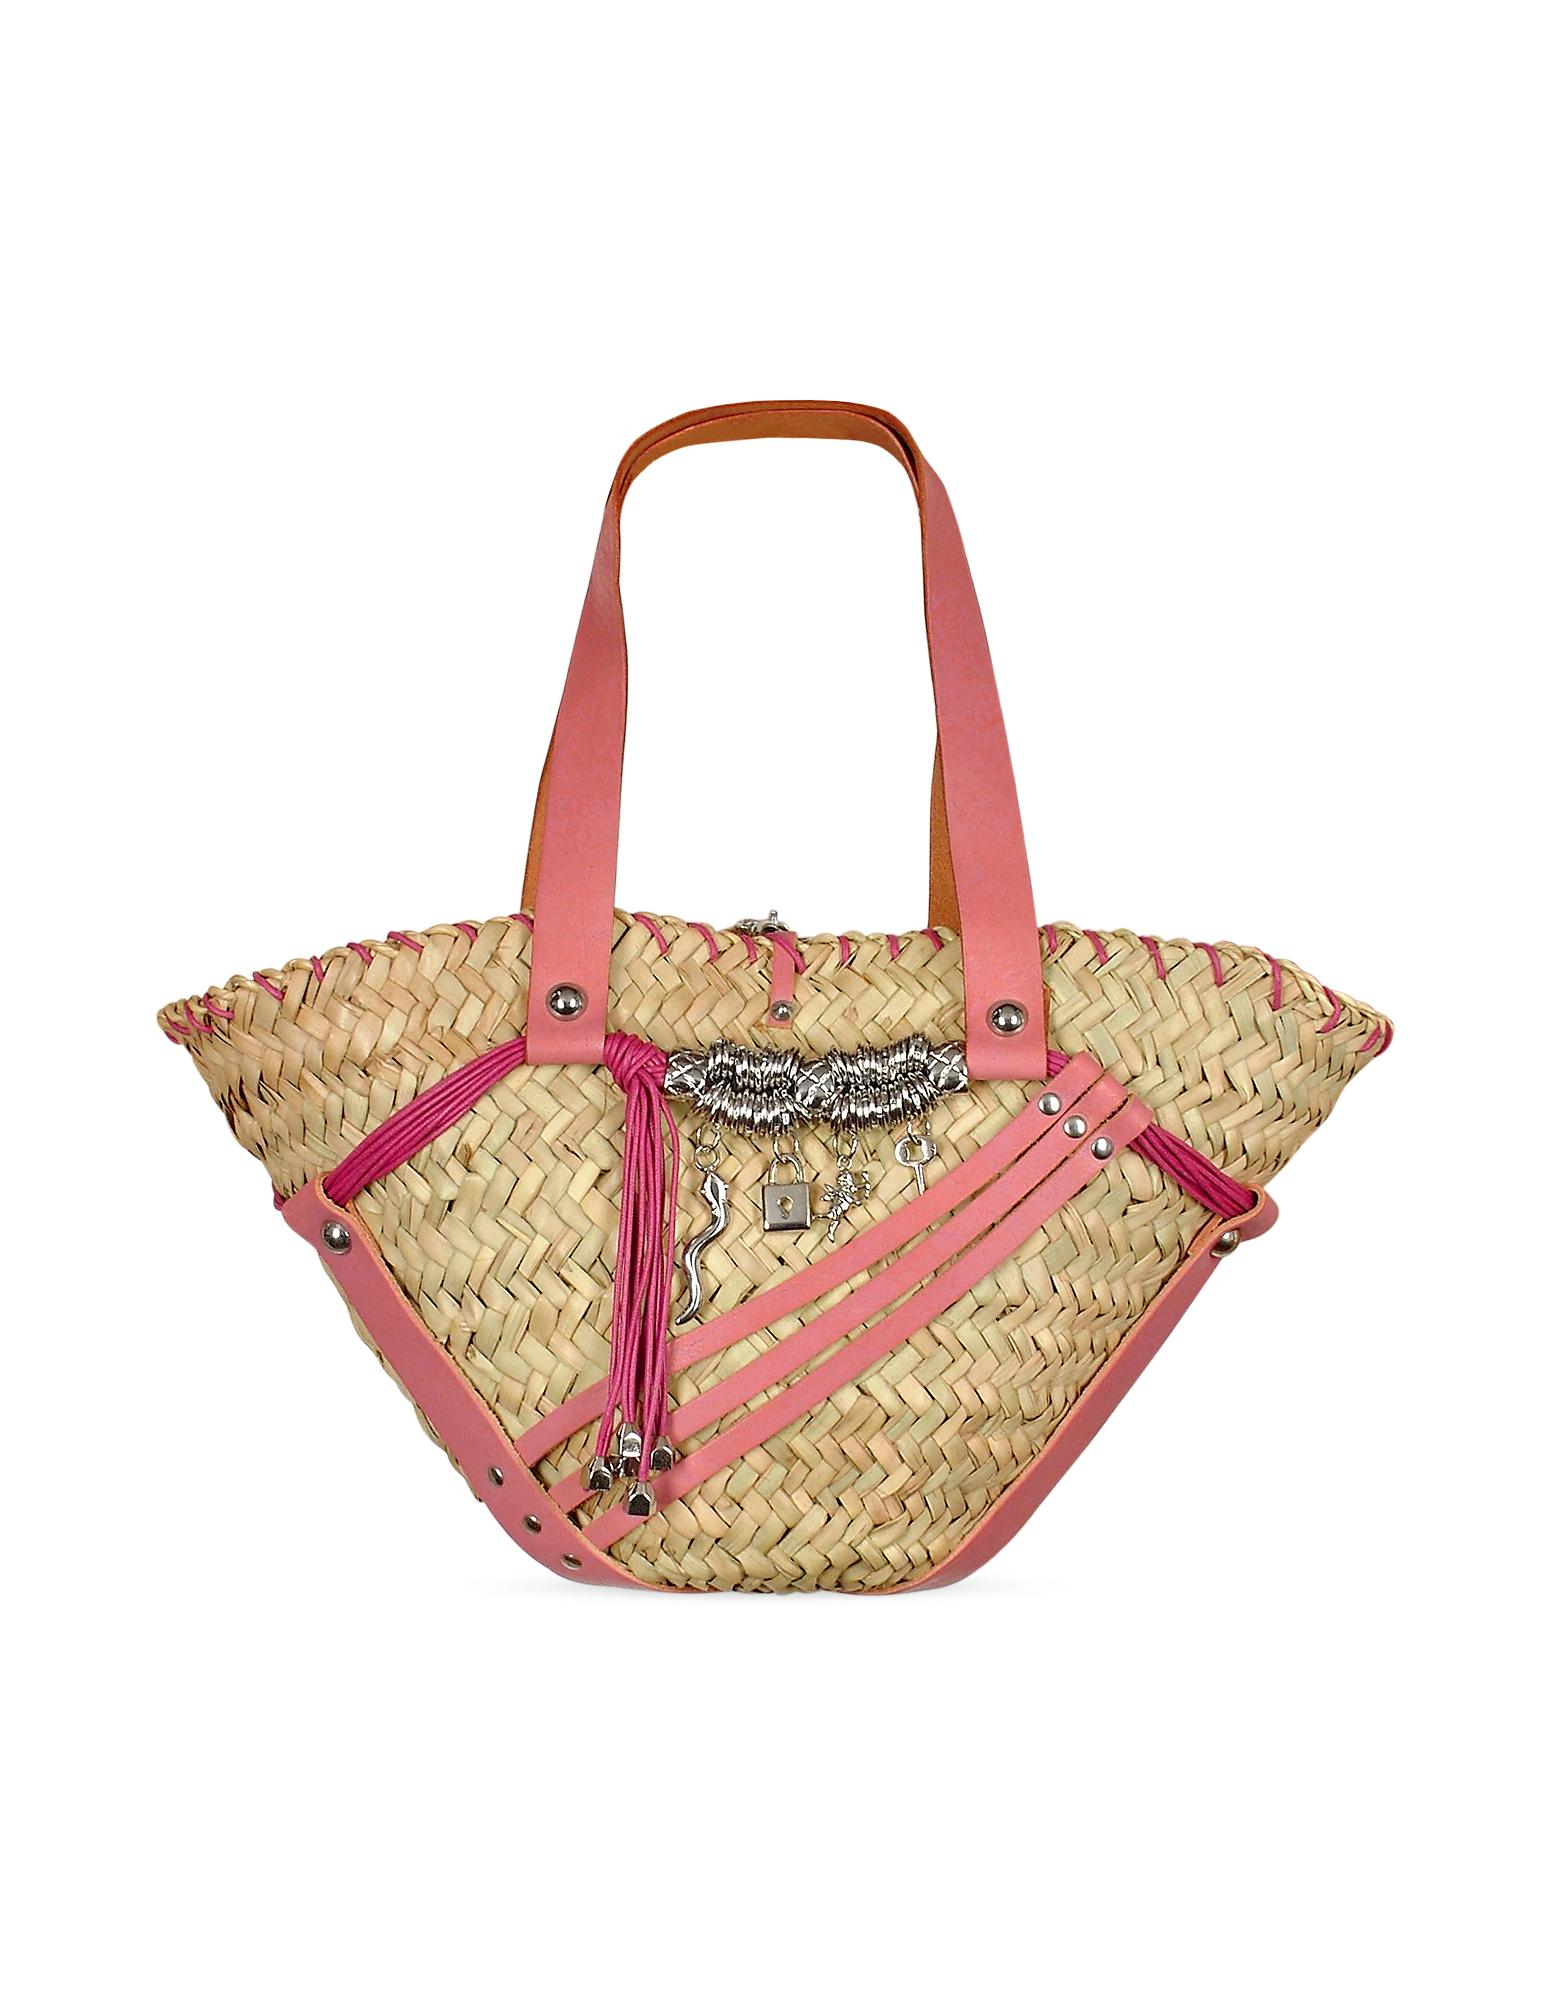 Maschera  Charm Pendants Pink Leather & Straw Tote Bag